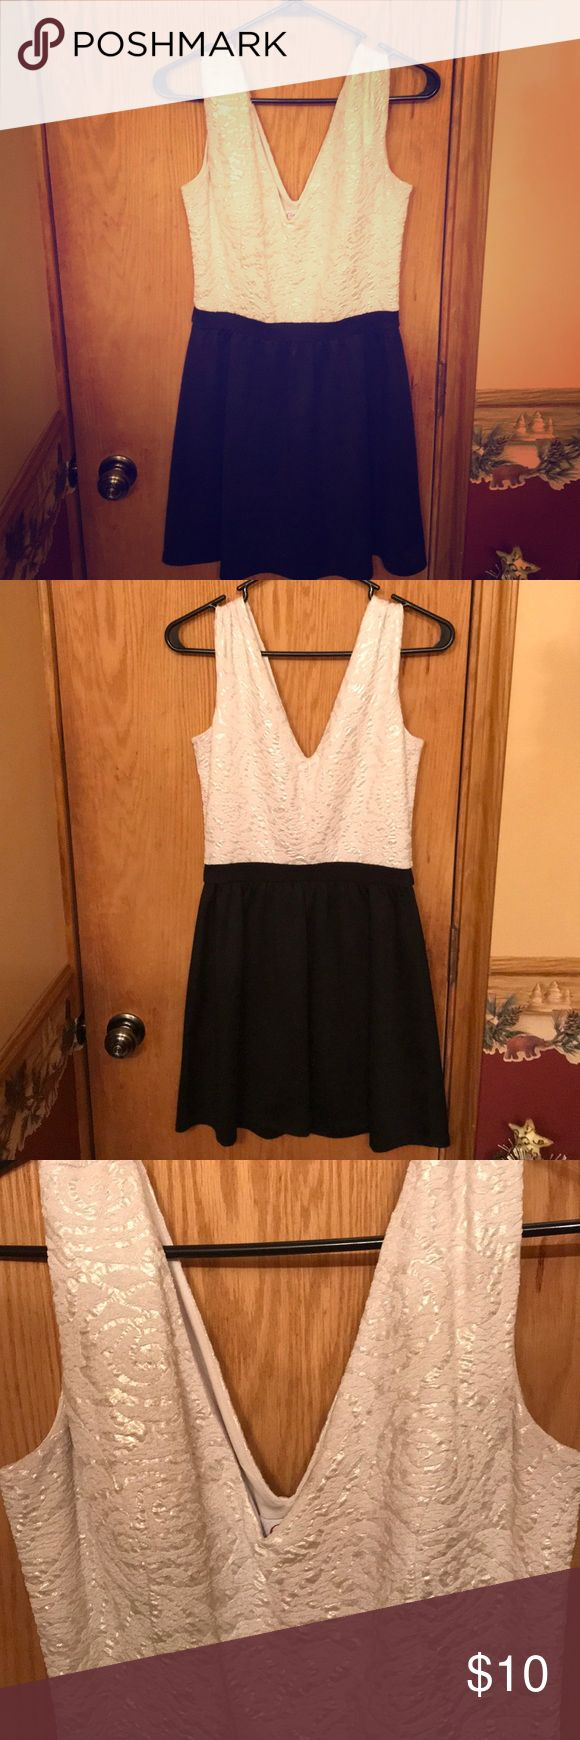 White & black Candie's dress worn once! White & black dress. White part is slightly textured. Size Medium, only worn once for New Year's Eve 2016. Candie's Dresses